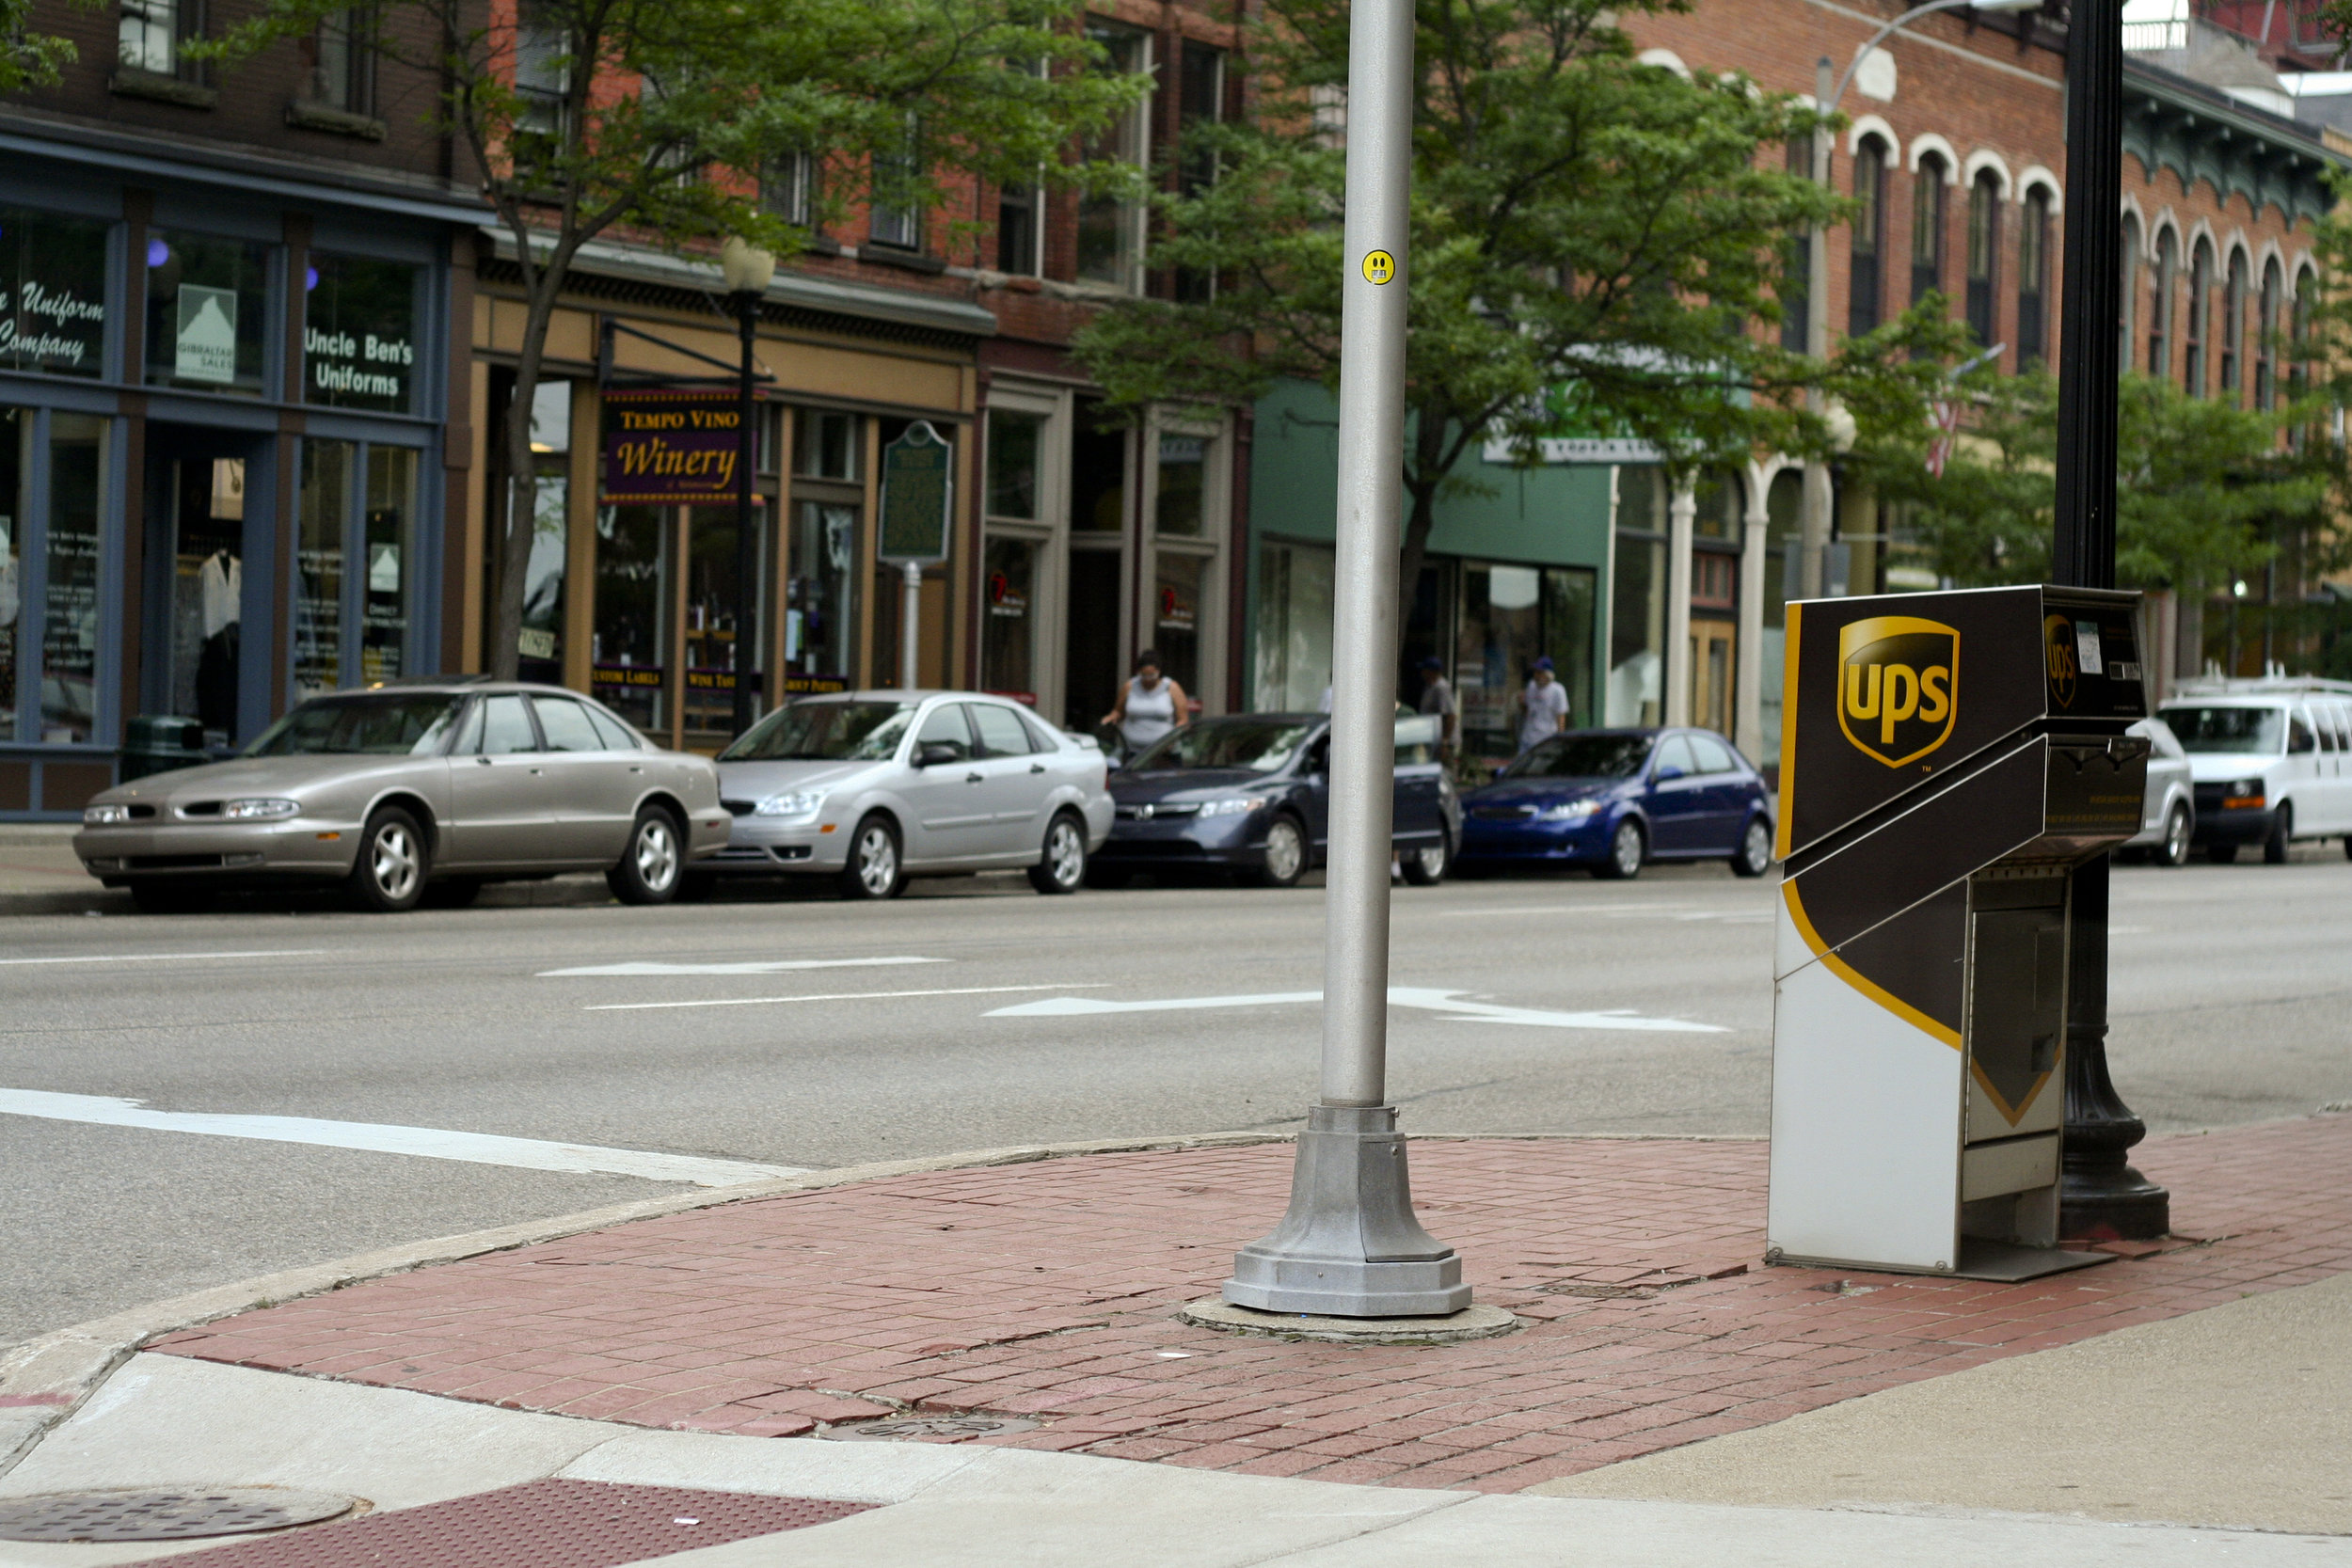 Dominion is local to Kalamazoo organizations showing UPS mailbox and cars in the street of a main street in the city.